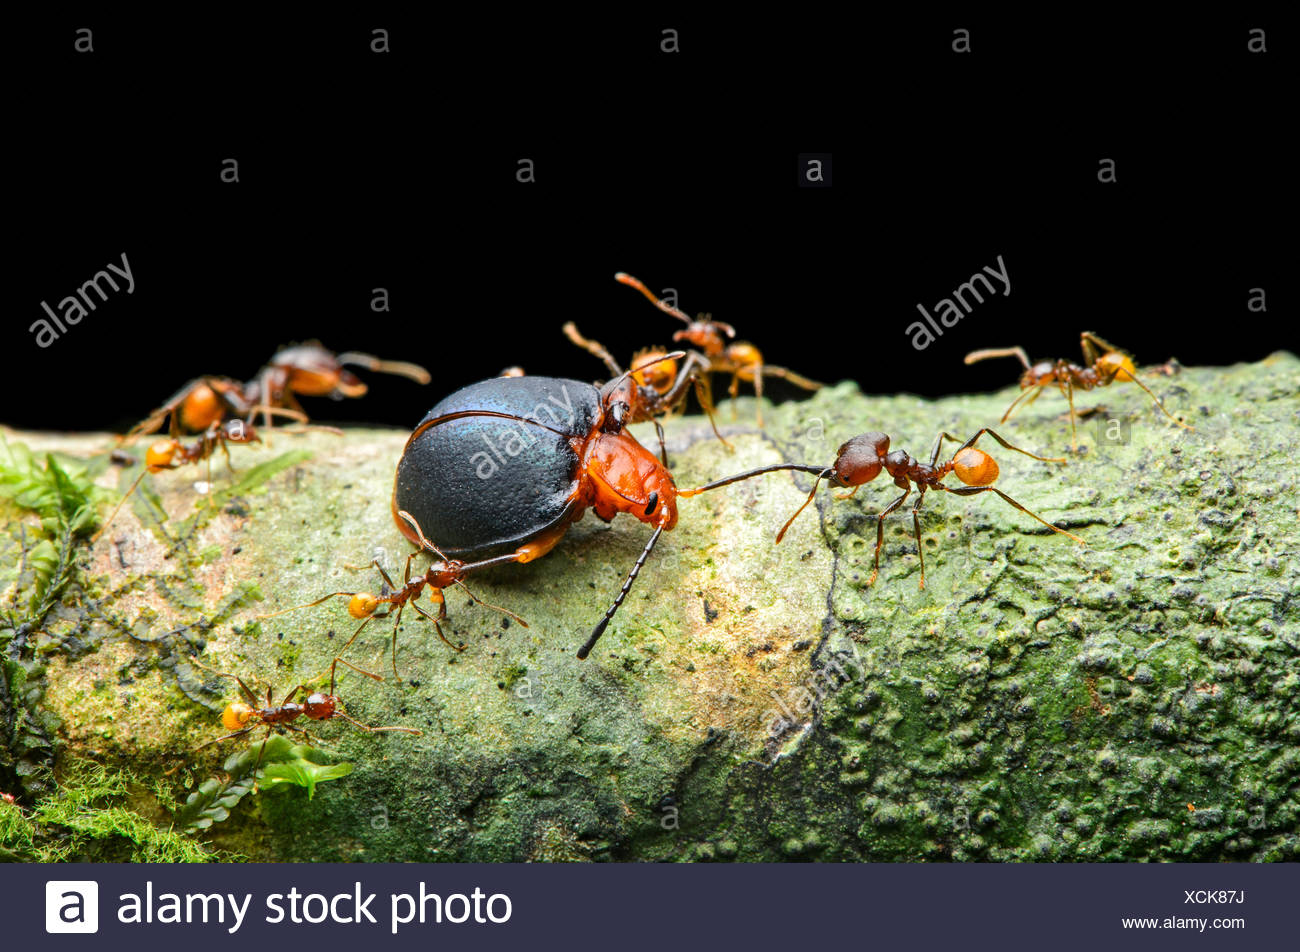 Ant (Pheidole sp.), worker attacking a fungus beetle (Endomychidae), Amazon rainforest, Yasuni National Park, Ecuador - Stock Image